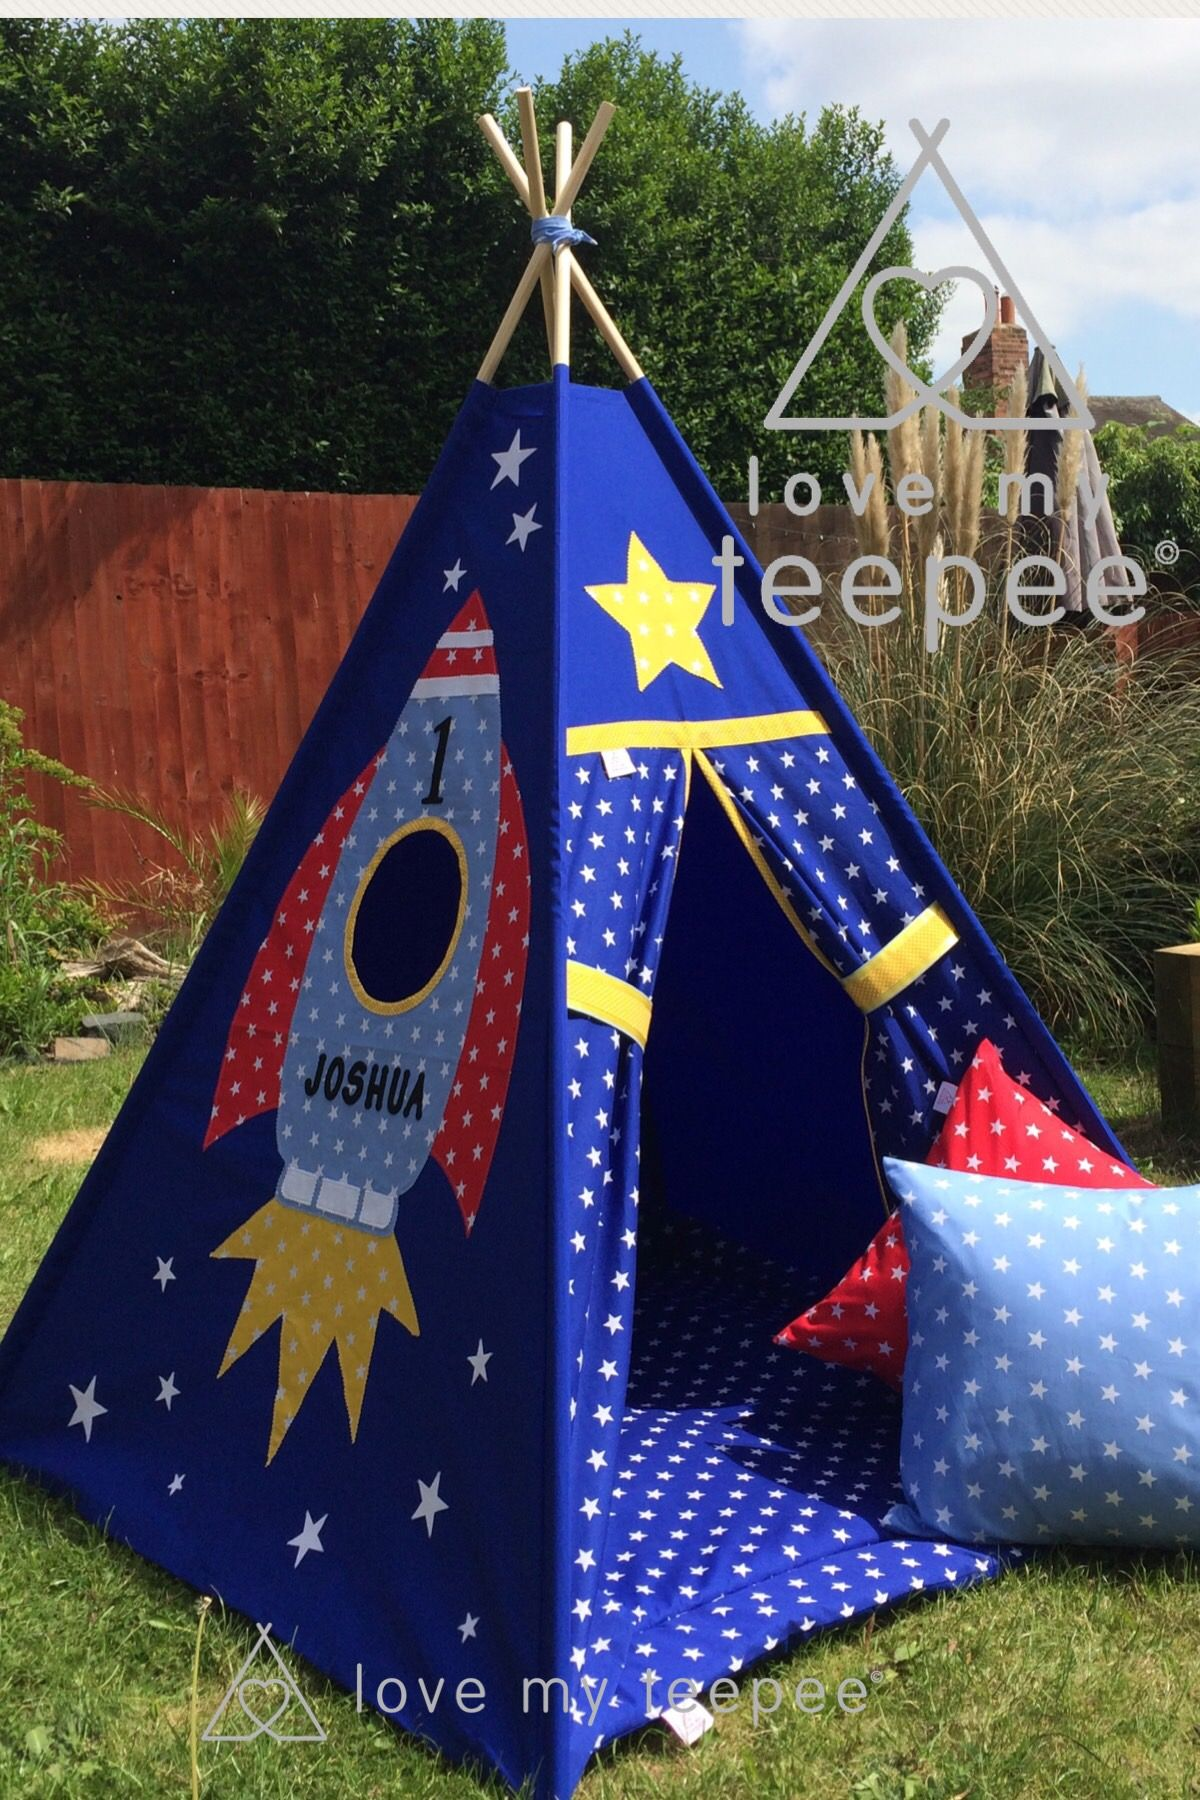 Childrens Personalised Blue Space Rocket Star Teepee Set Mat Cushions